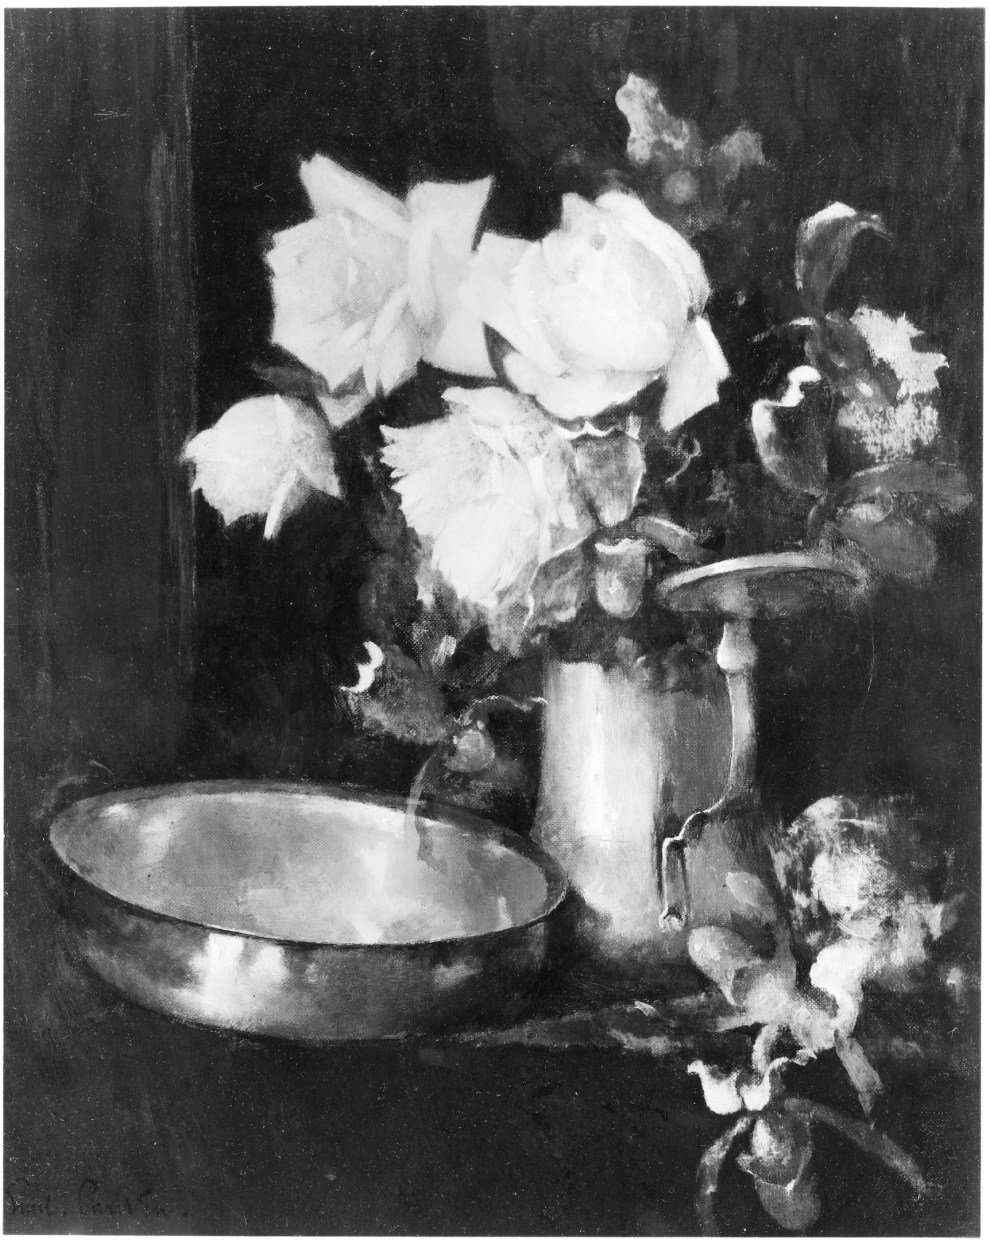 carlsen-emil-brass-bowl-and-flowers